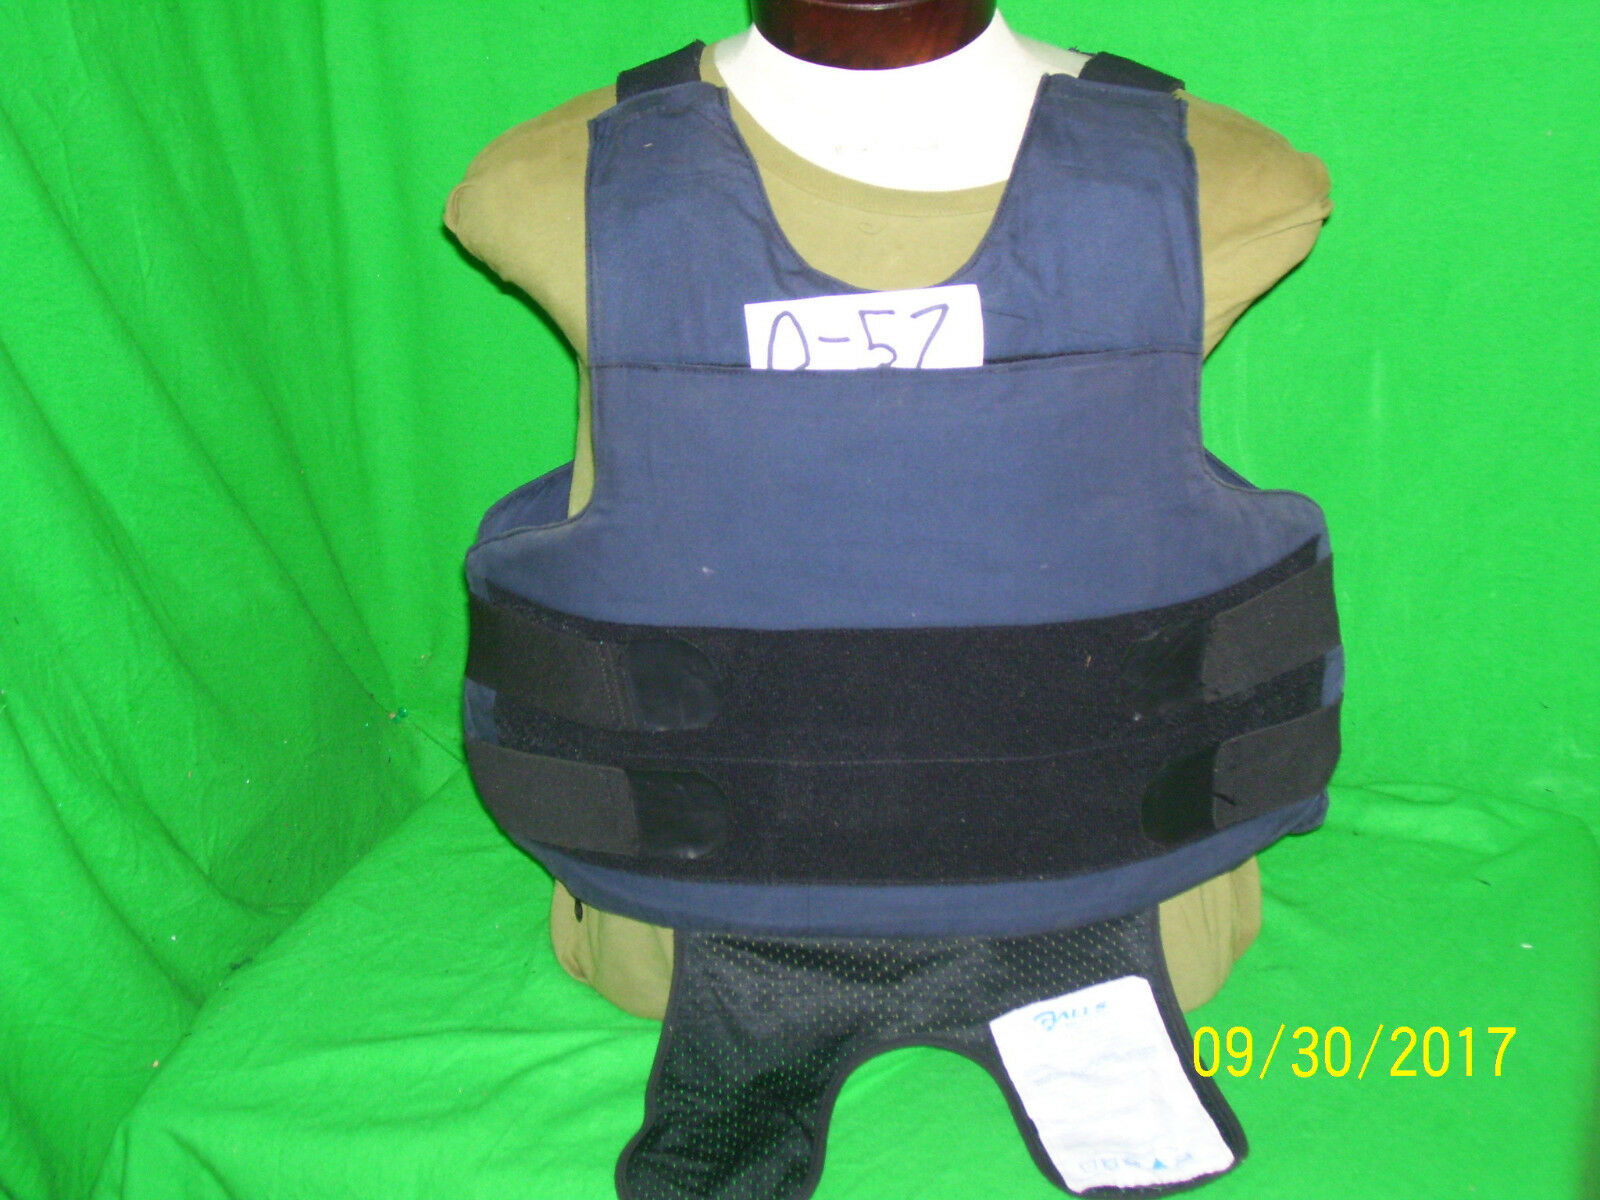 Galls Body Armor Bullet Proof Vest Level  IIIA-X-Larg VG Cond 2011+FREE-5X8  D57  buy 100% authentic quality